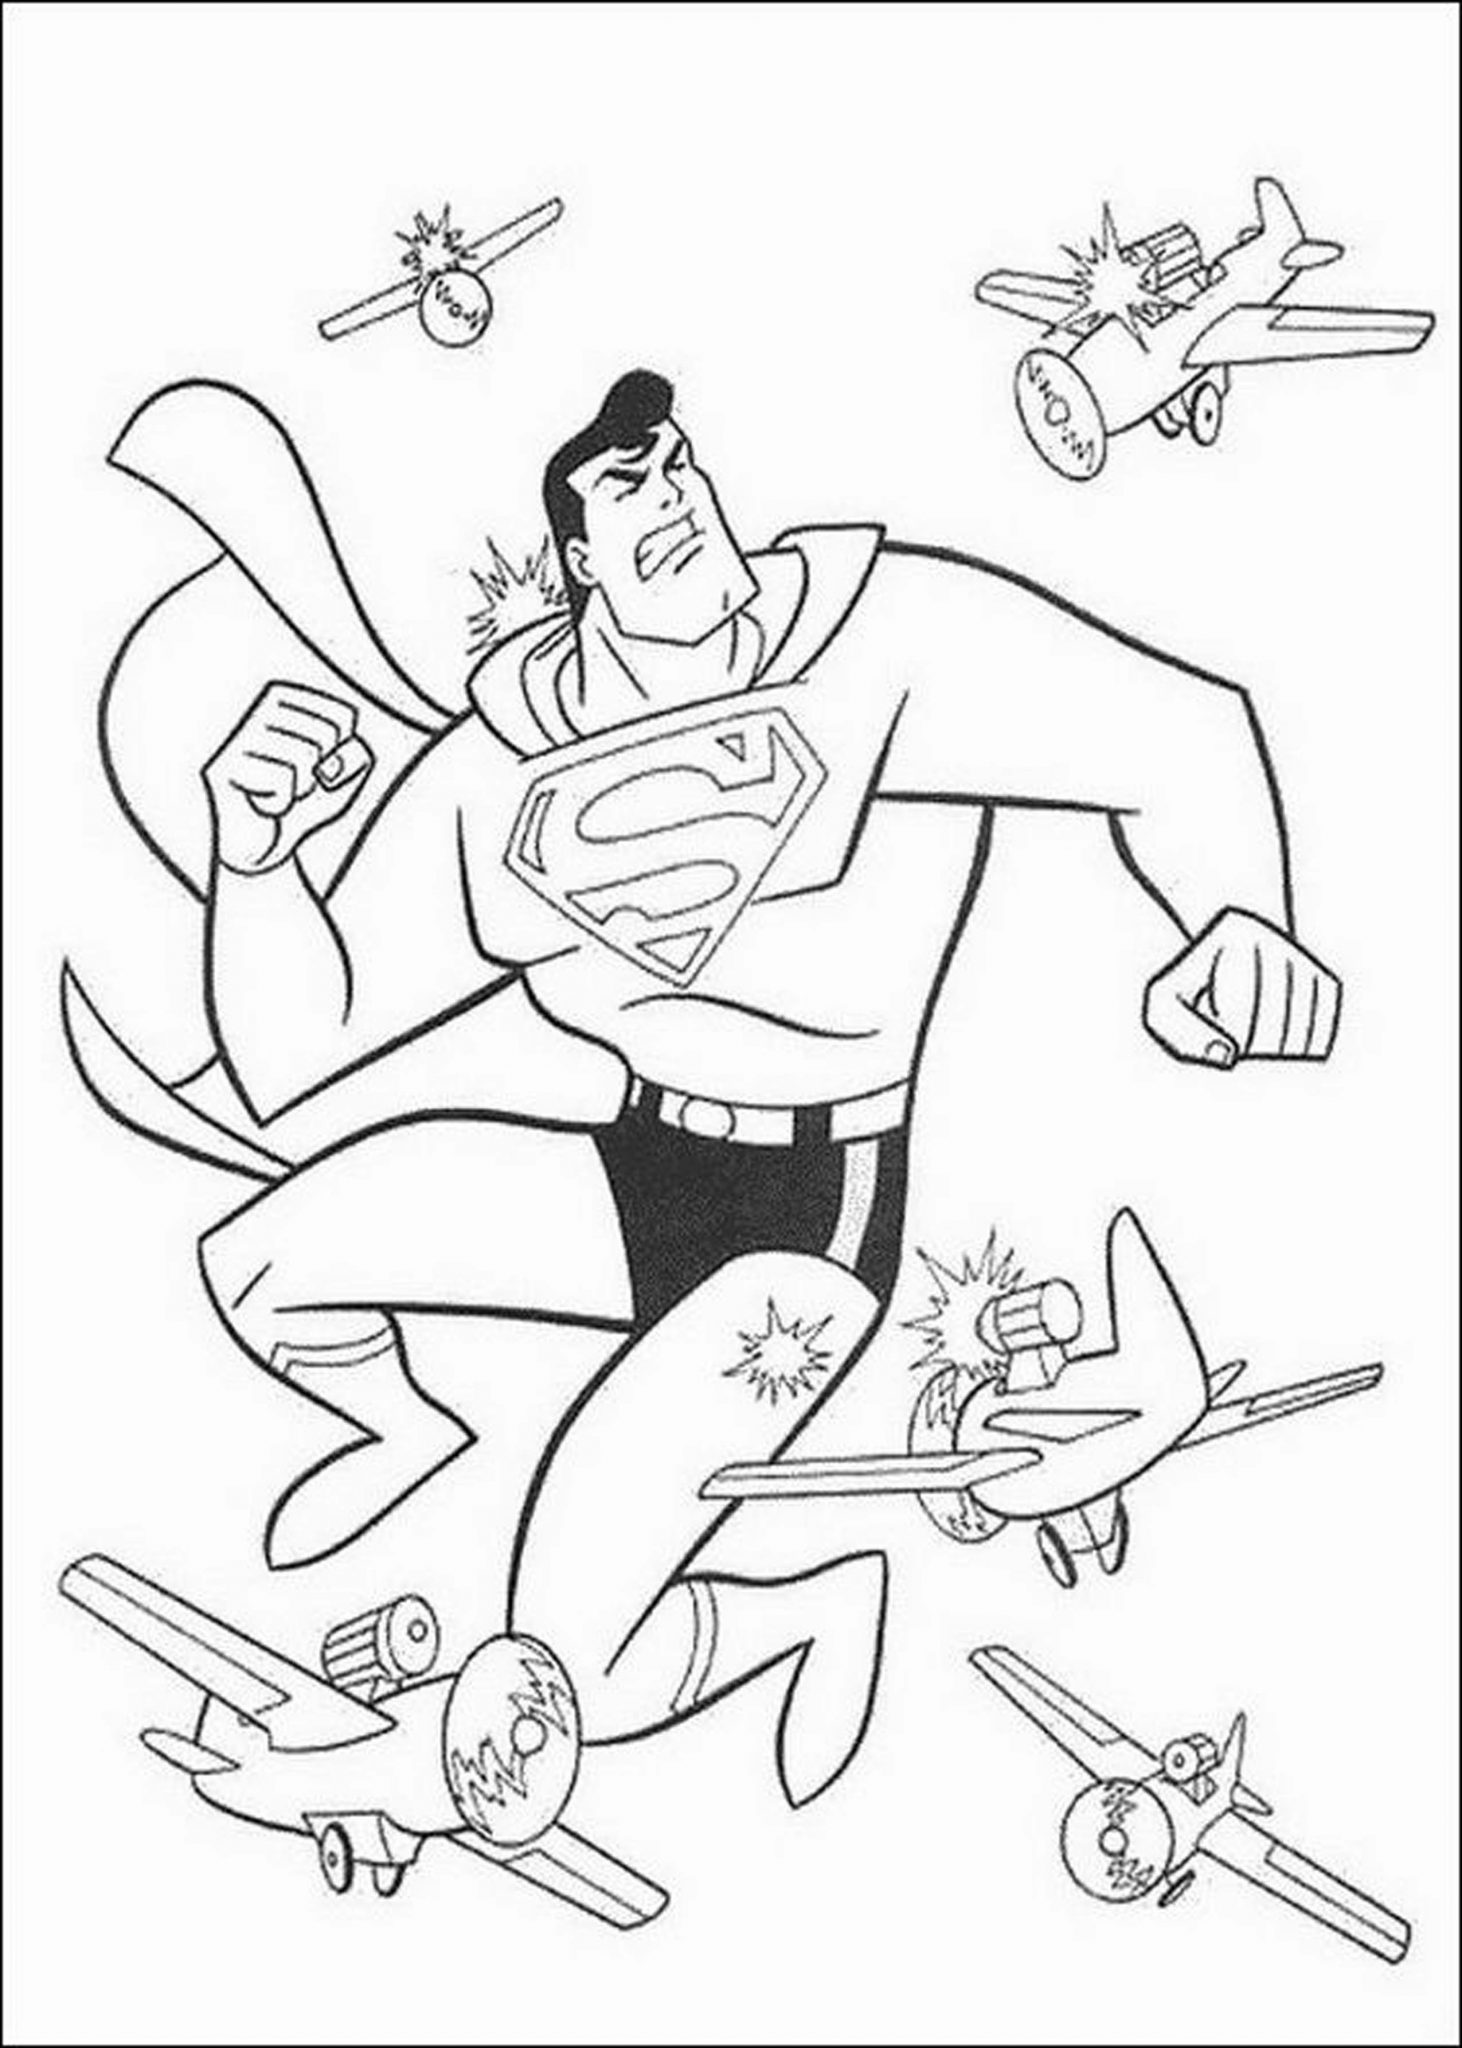 coloring book for kids coloring pages for kids by kids art starts for kids kids coloring book for